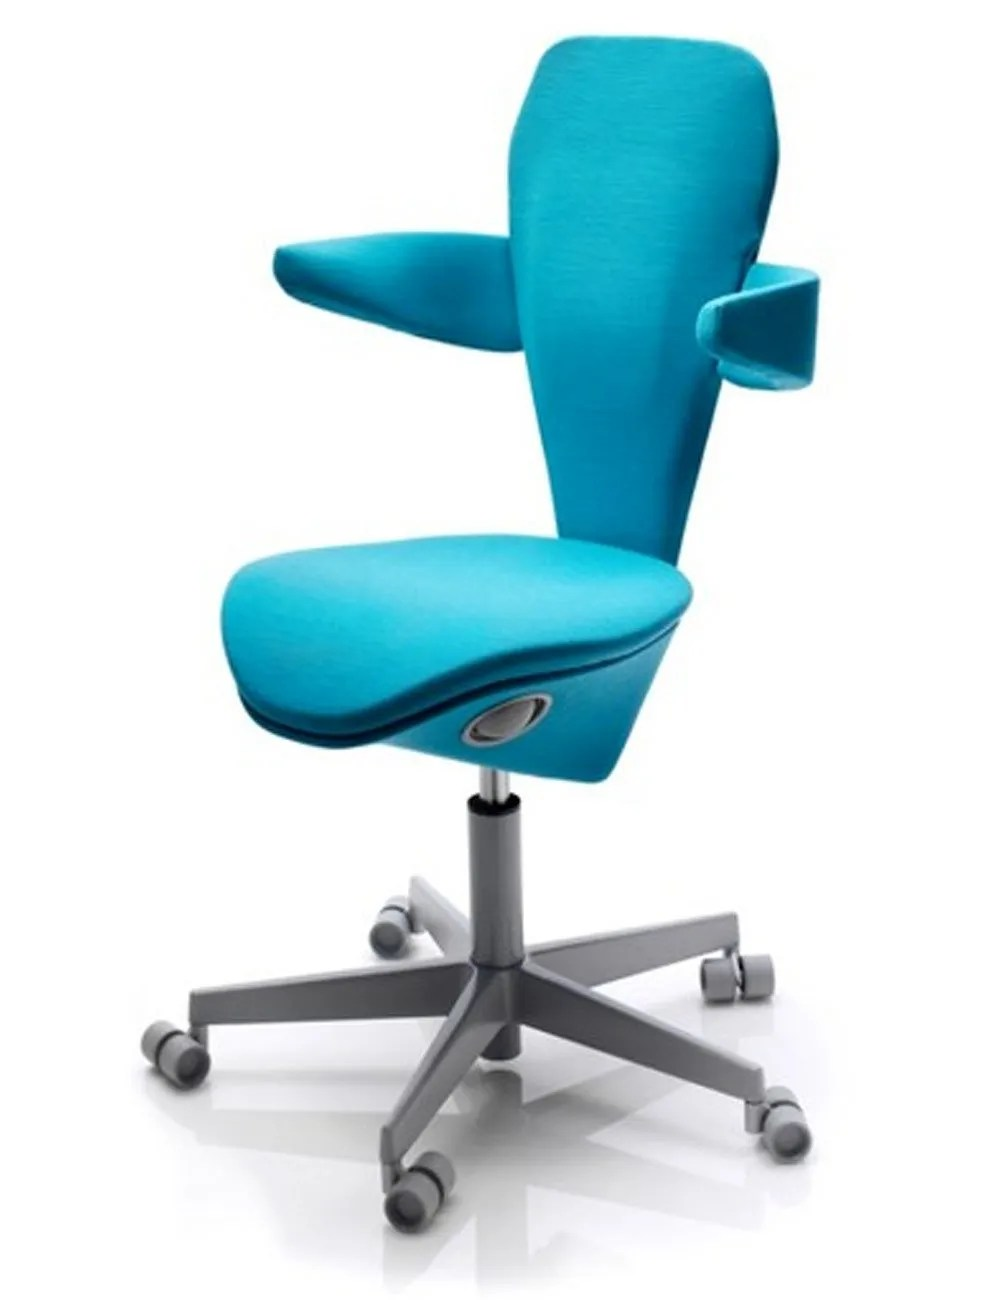 Lei Office Chair Designed Specifically For Women Online Ergonomics